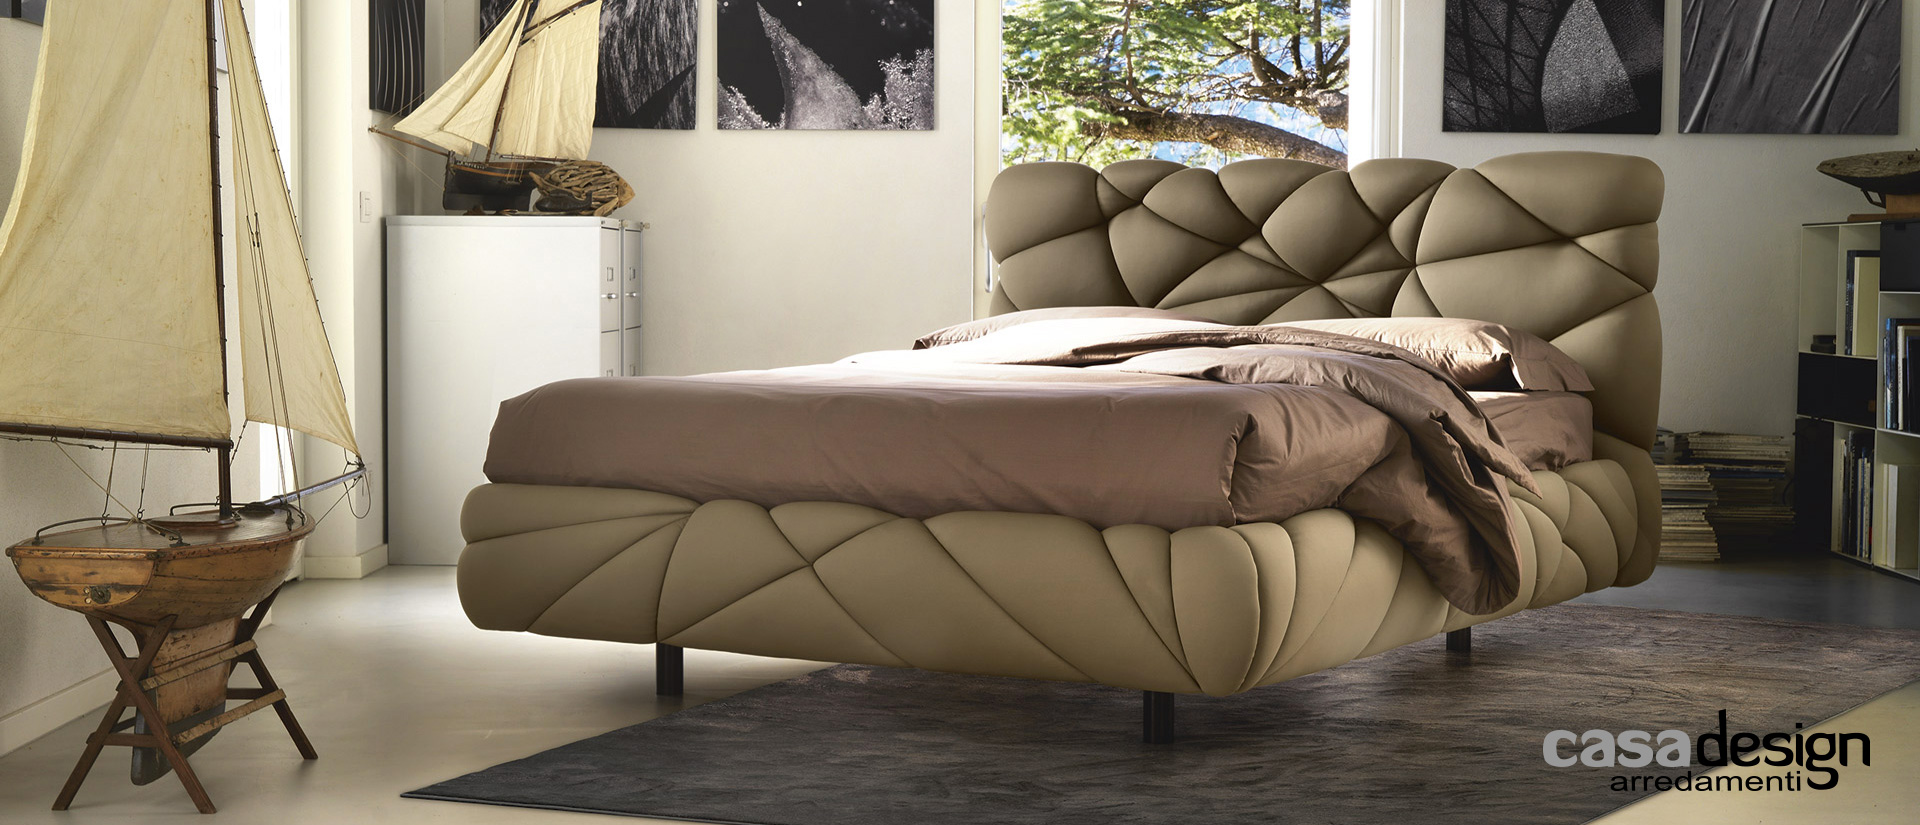 Letto matrimoniale in offerta - casadesign